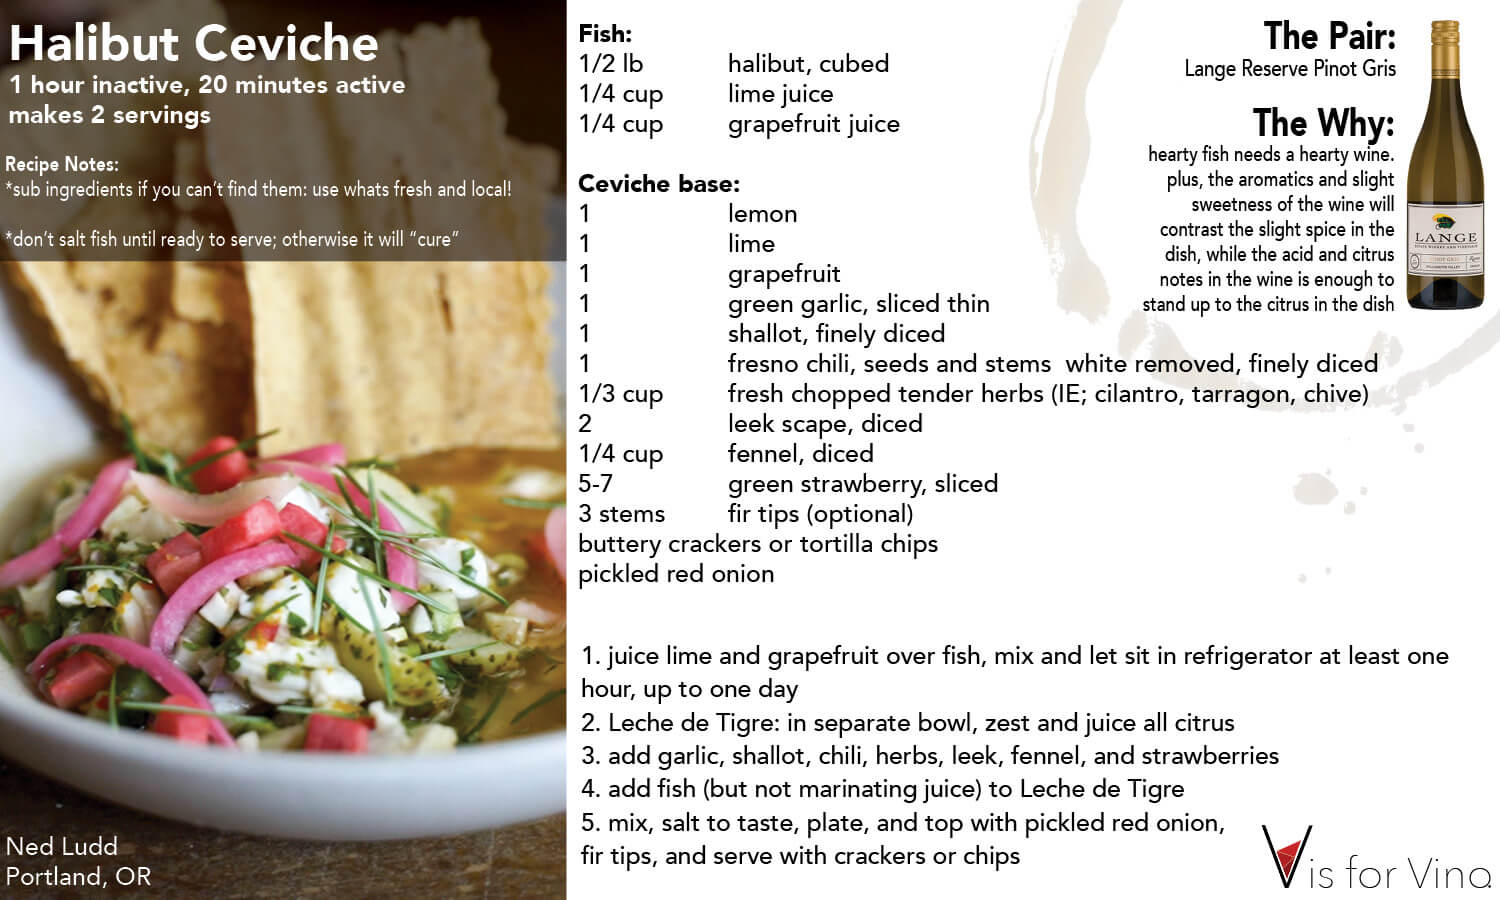 Oregon Halibut Ceviche